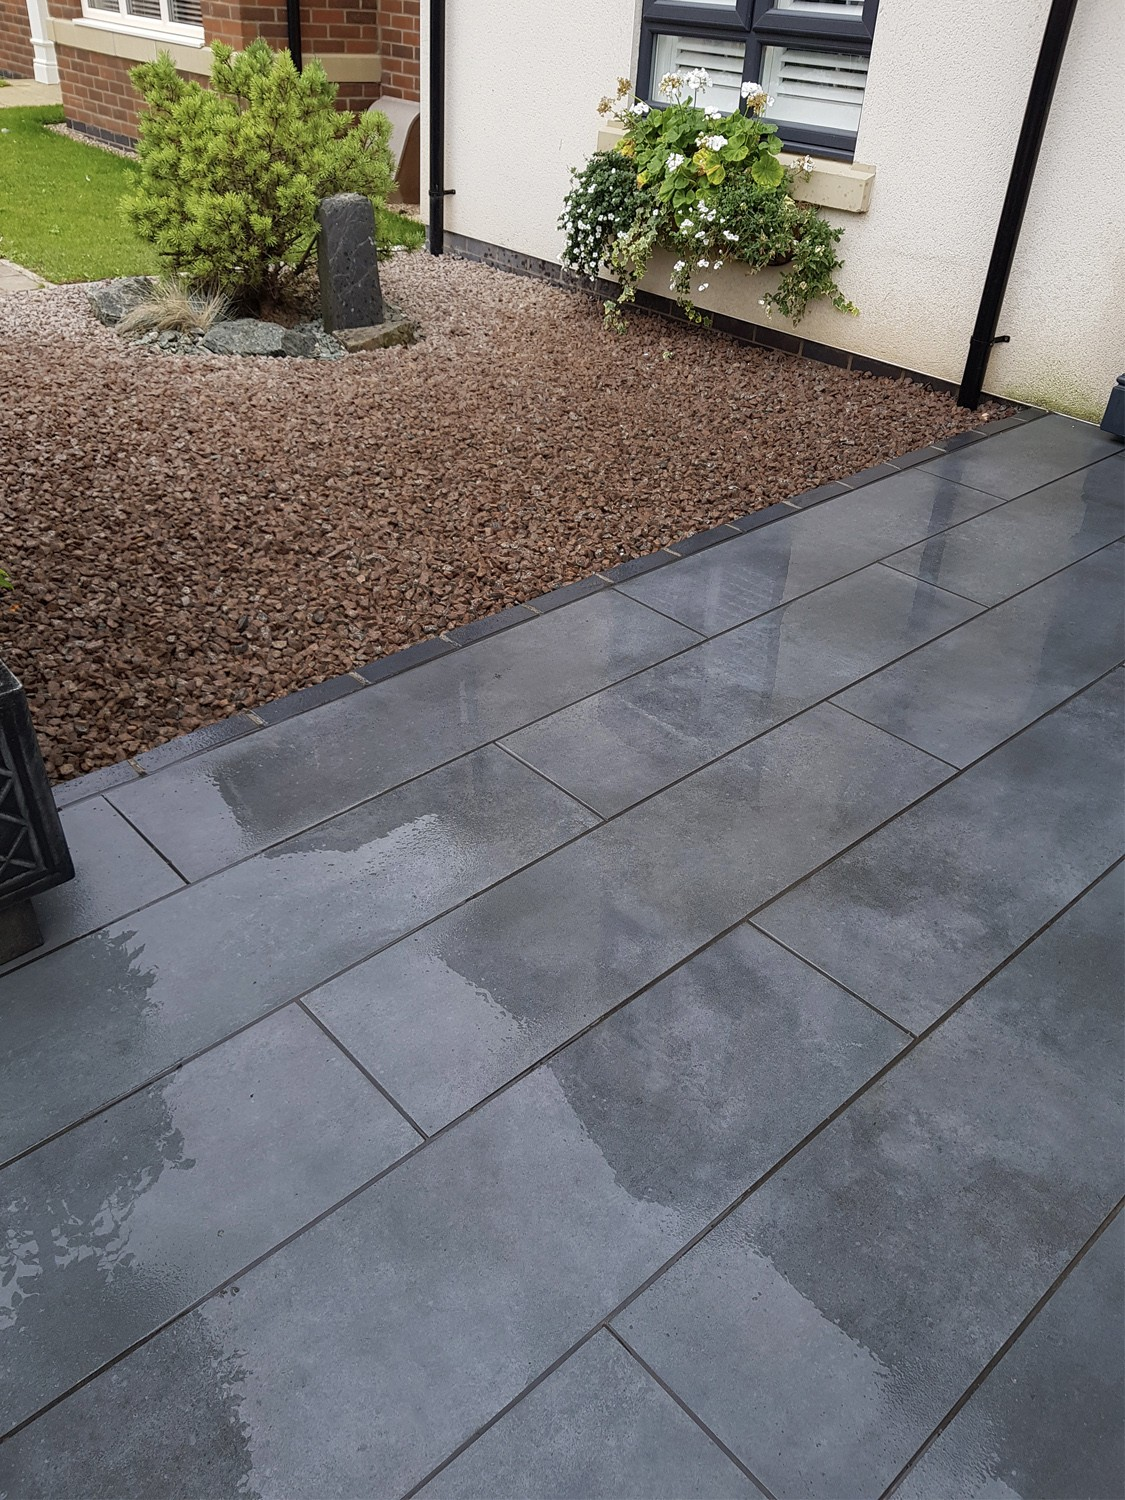 Eclipse Ash Virtue Vitrified Porcelain Paving Slabs - 1200x300 Planks